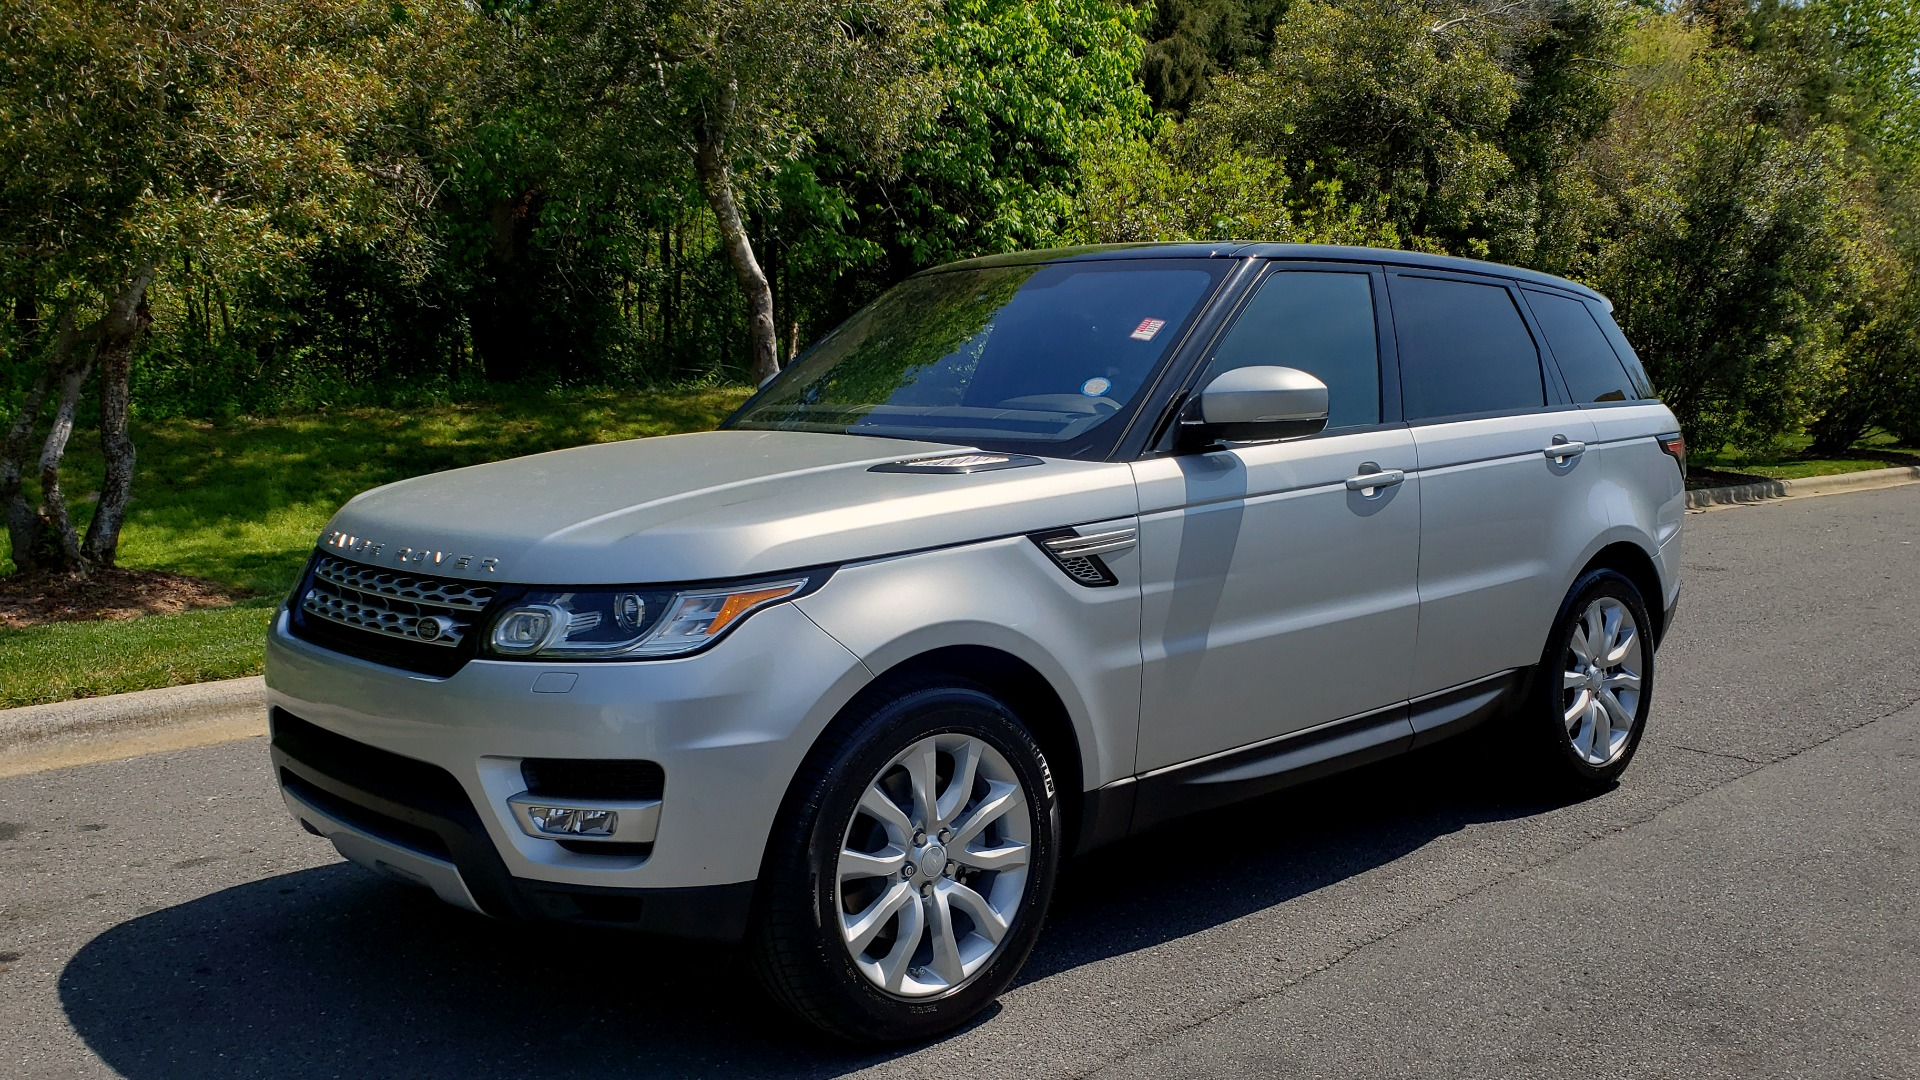 Used 2017 Land Rover RANGE ROVER SPORT HSE / SC V6 / 4X4 / NAV / PANO-ROOF / REARVIEW for sale $43,995 at Formula Imports in Charlotte NC 28227 1